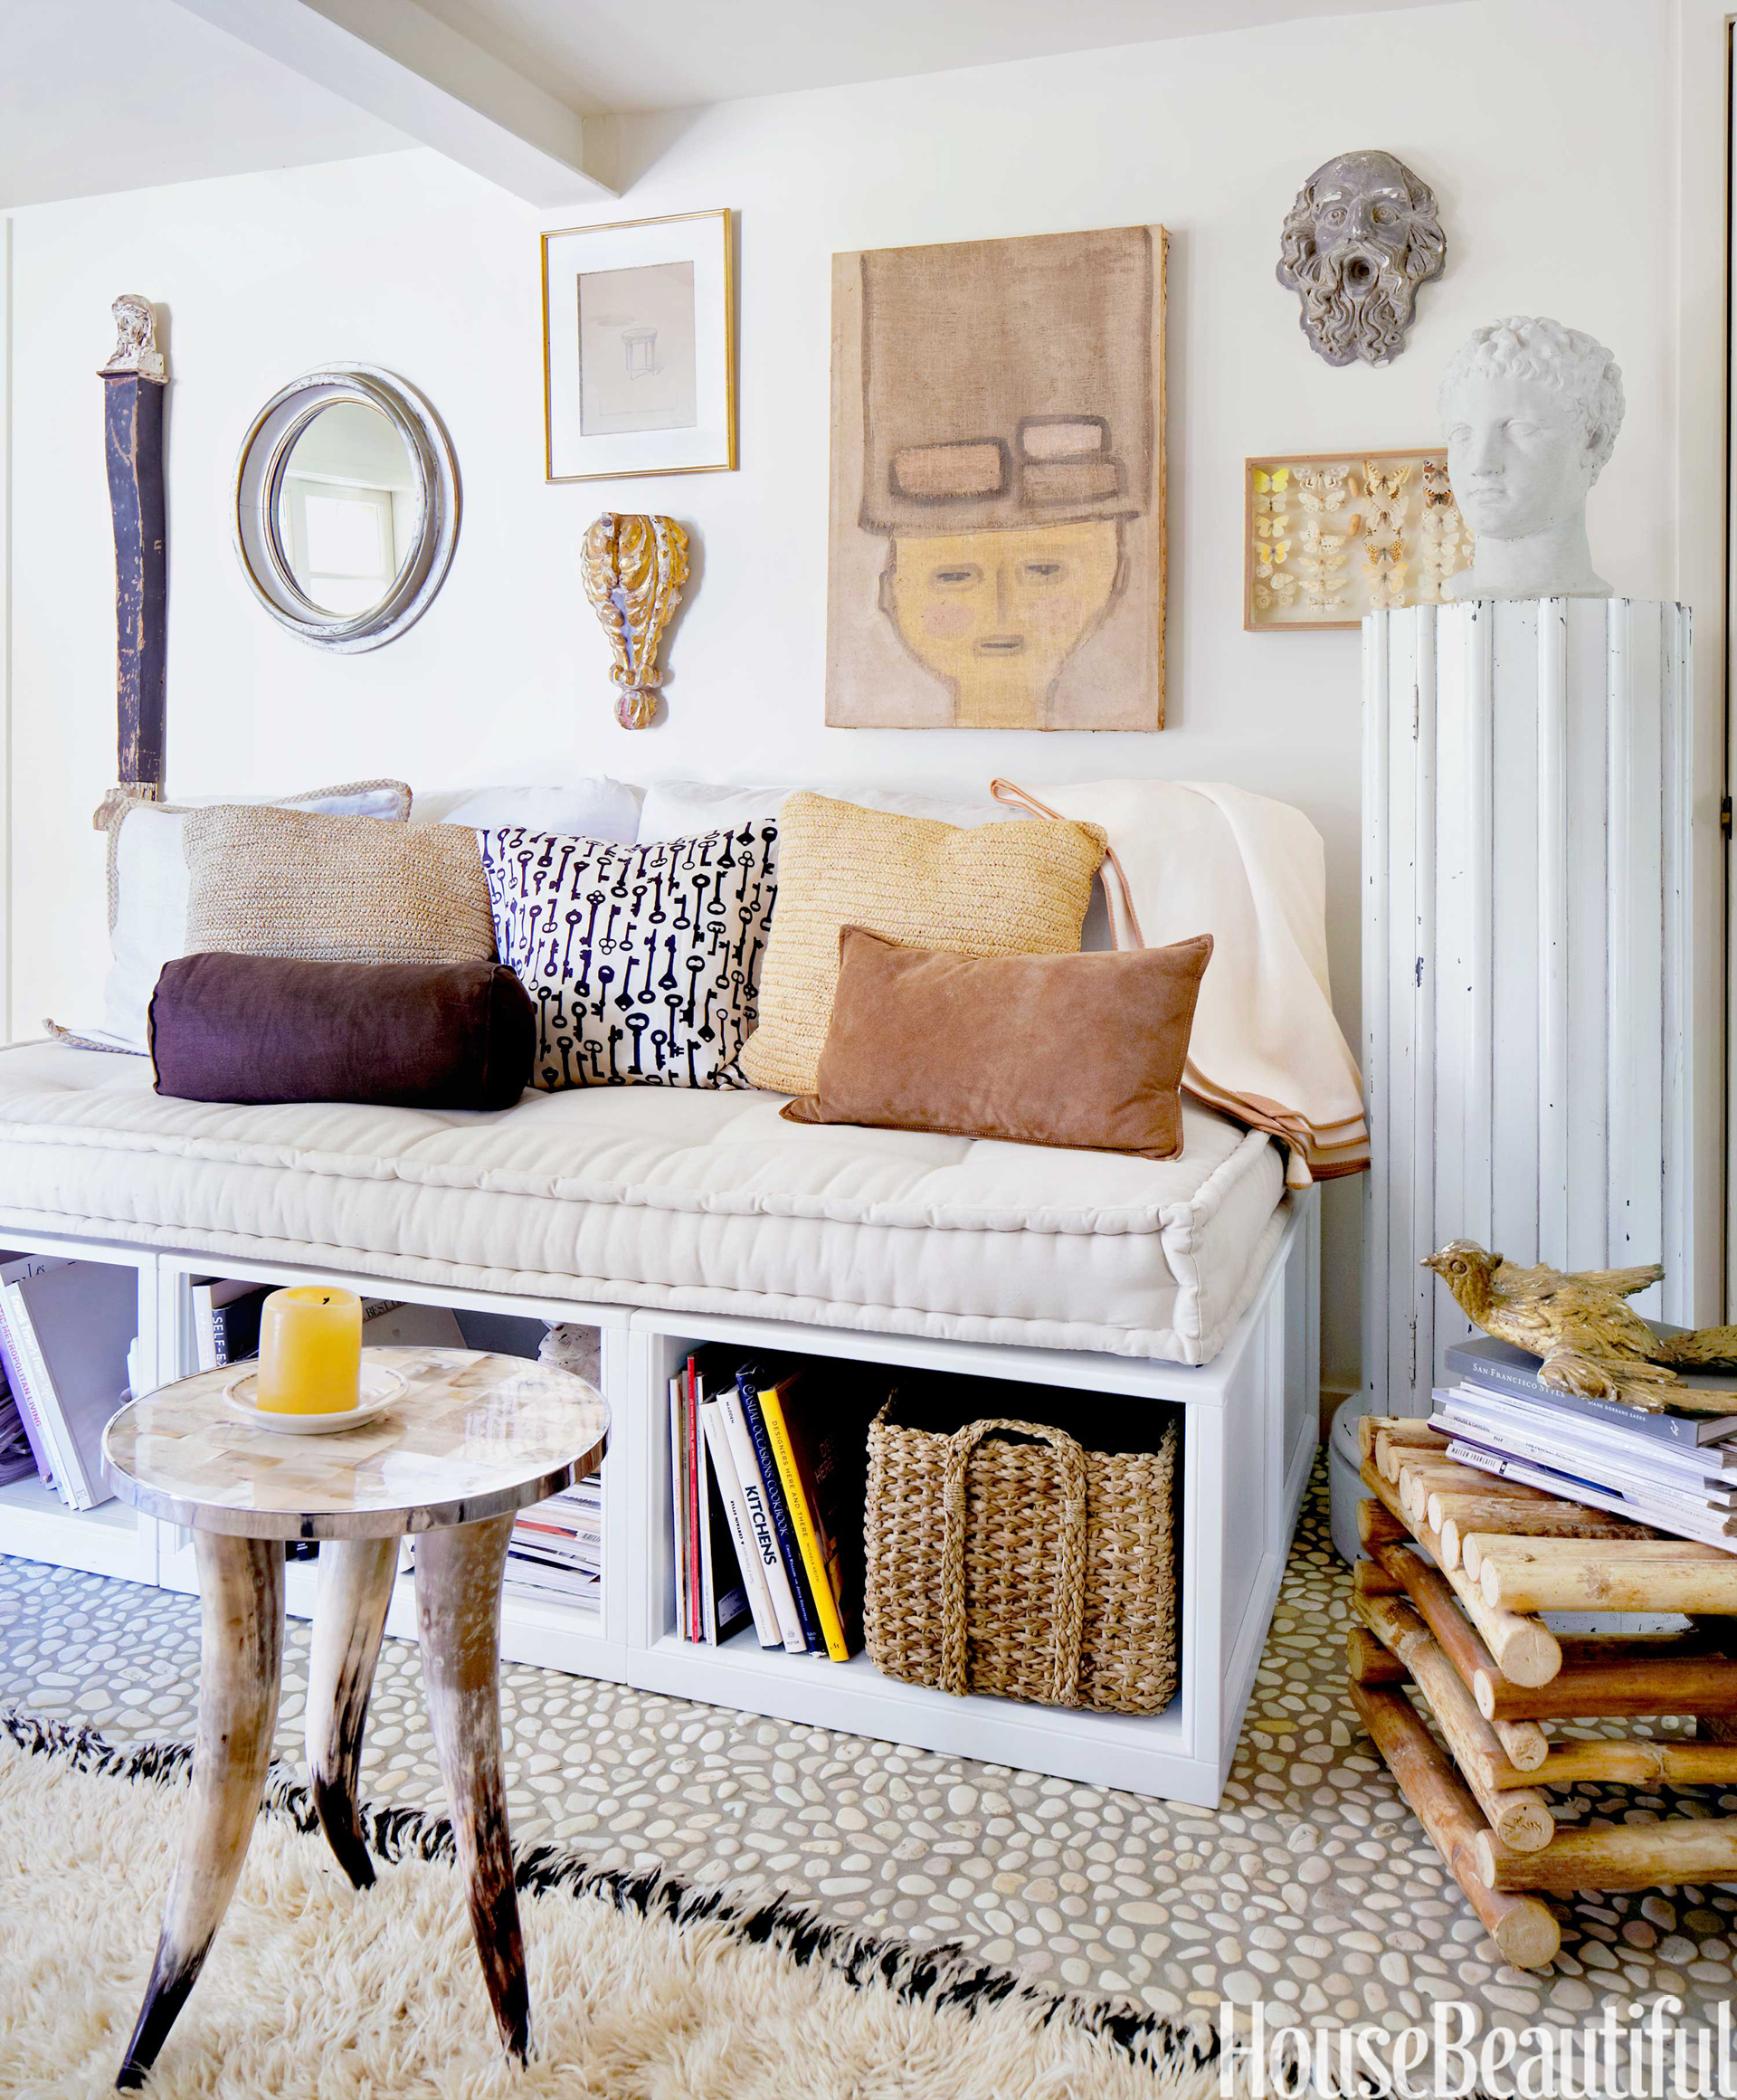 Decorating Small Apartment Living Room: How To Make The Most Of A Small